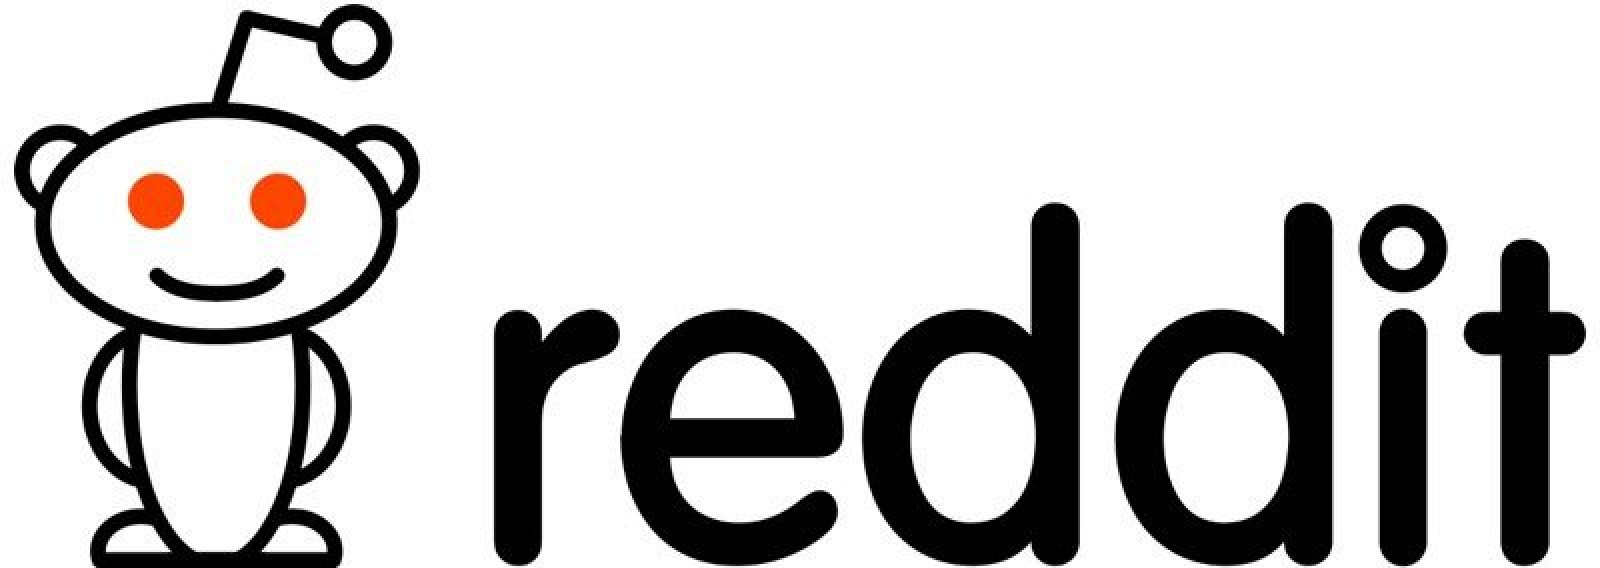 Reddit Suffers Data Breach With Hackers Obtaining Email